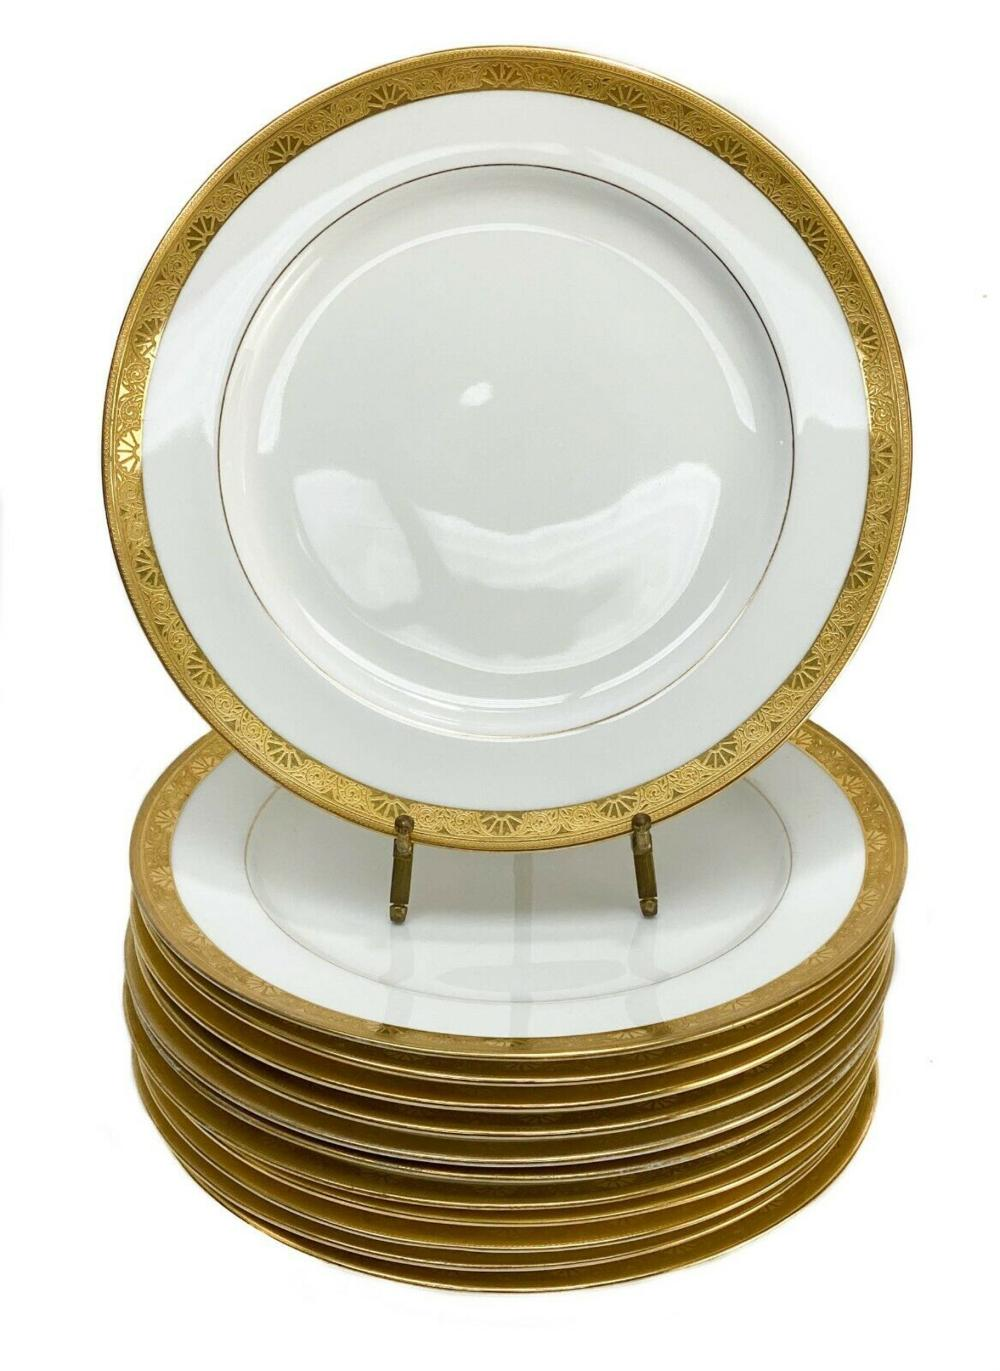 12 Minton England for Tiffany & Co. Dinner Plates